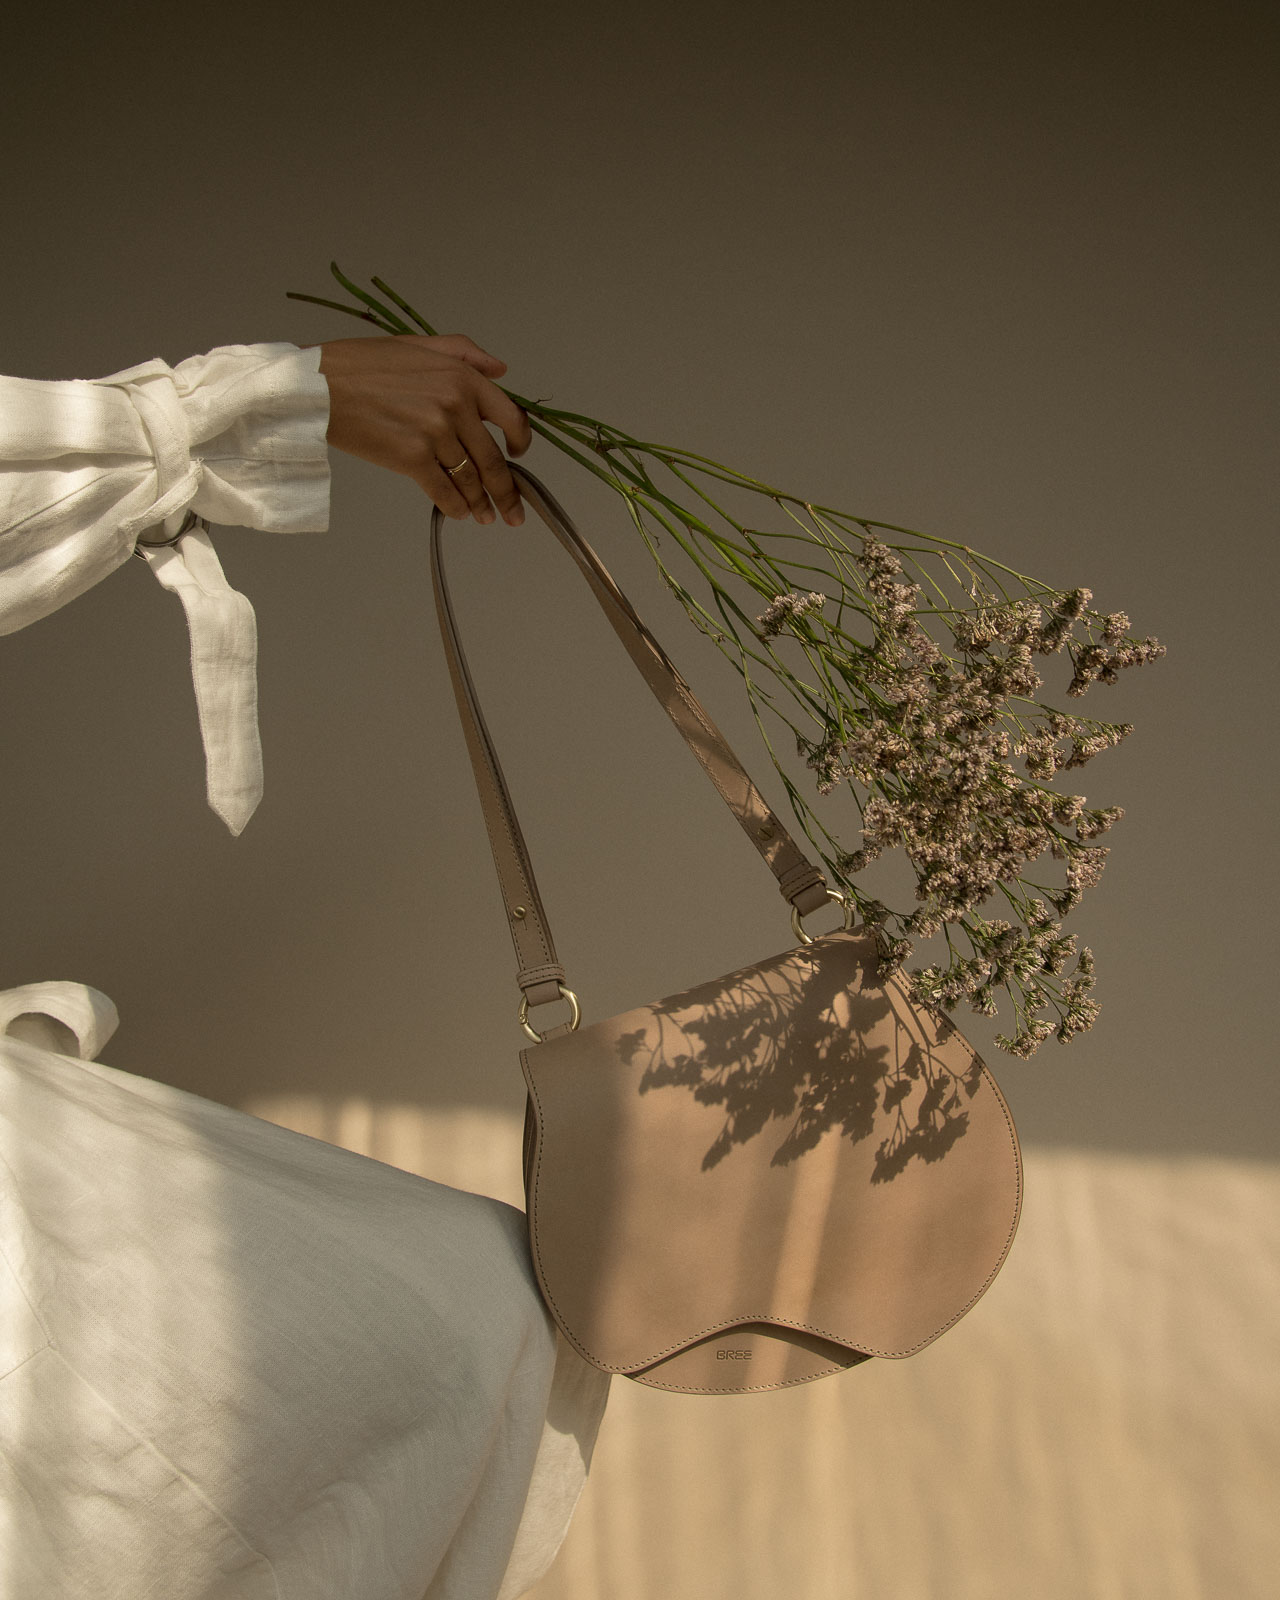 storm wears blanche copenhagen white linen coat with bree nature beauty bag in color humus shot by marius knieling